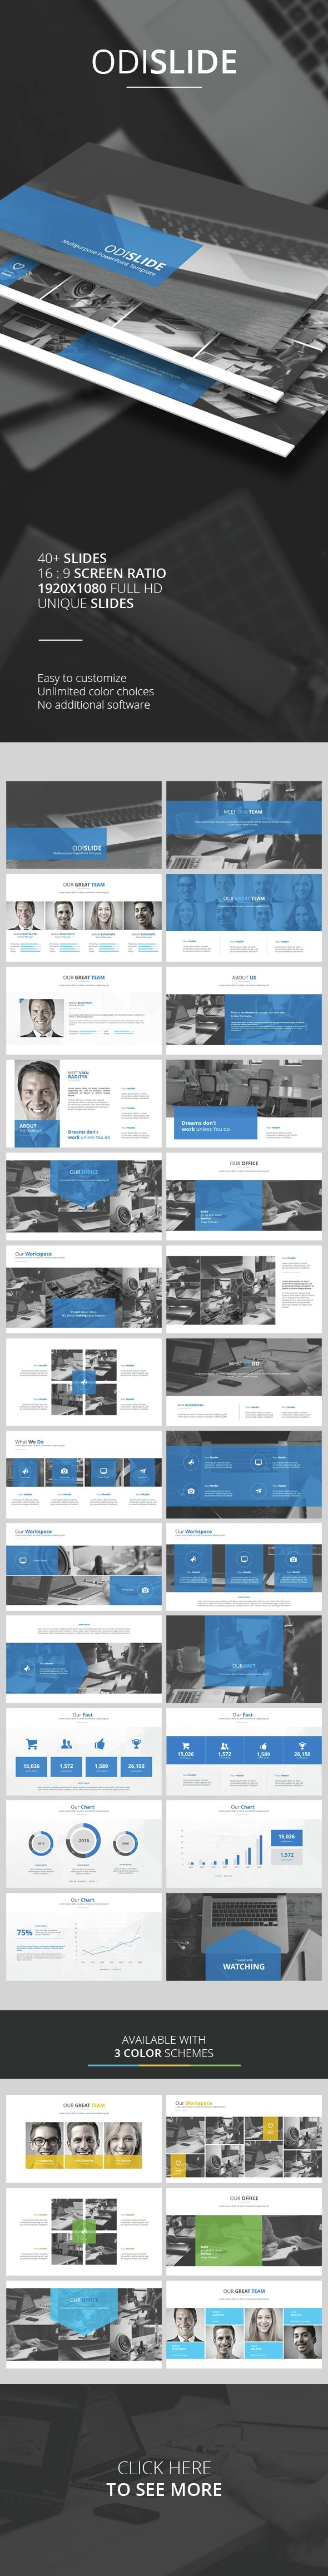 Odislide Keynote Template. Download here: http://graphicriver.net/item/odislide-keynote-template/14860418?ref=ksioks